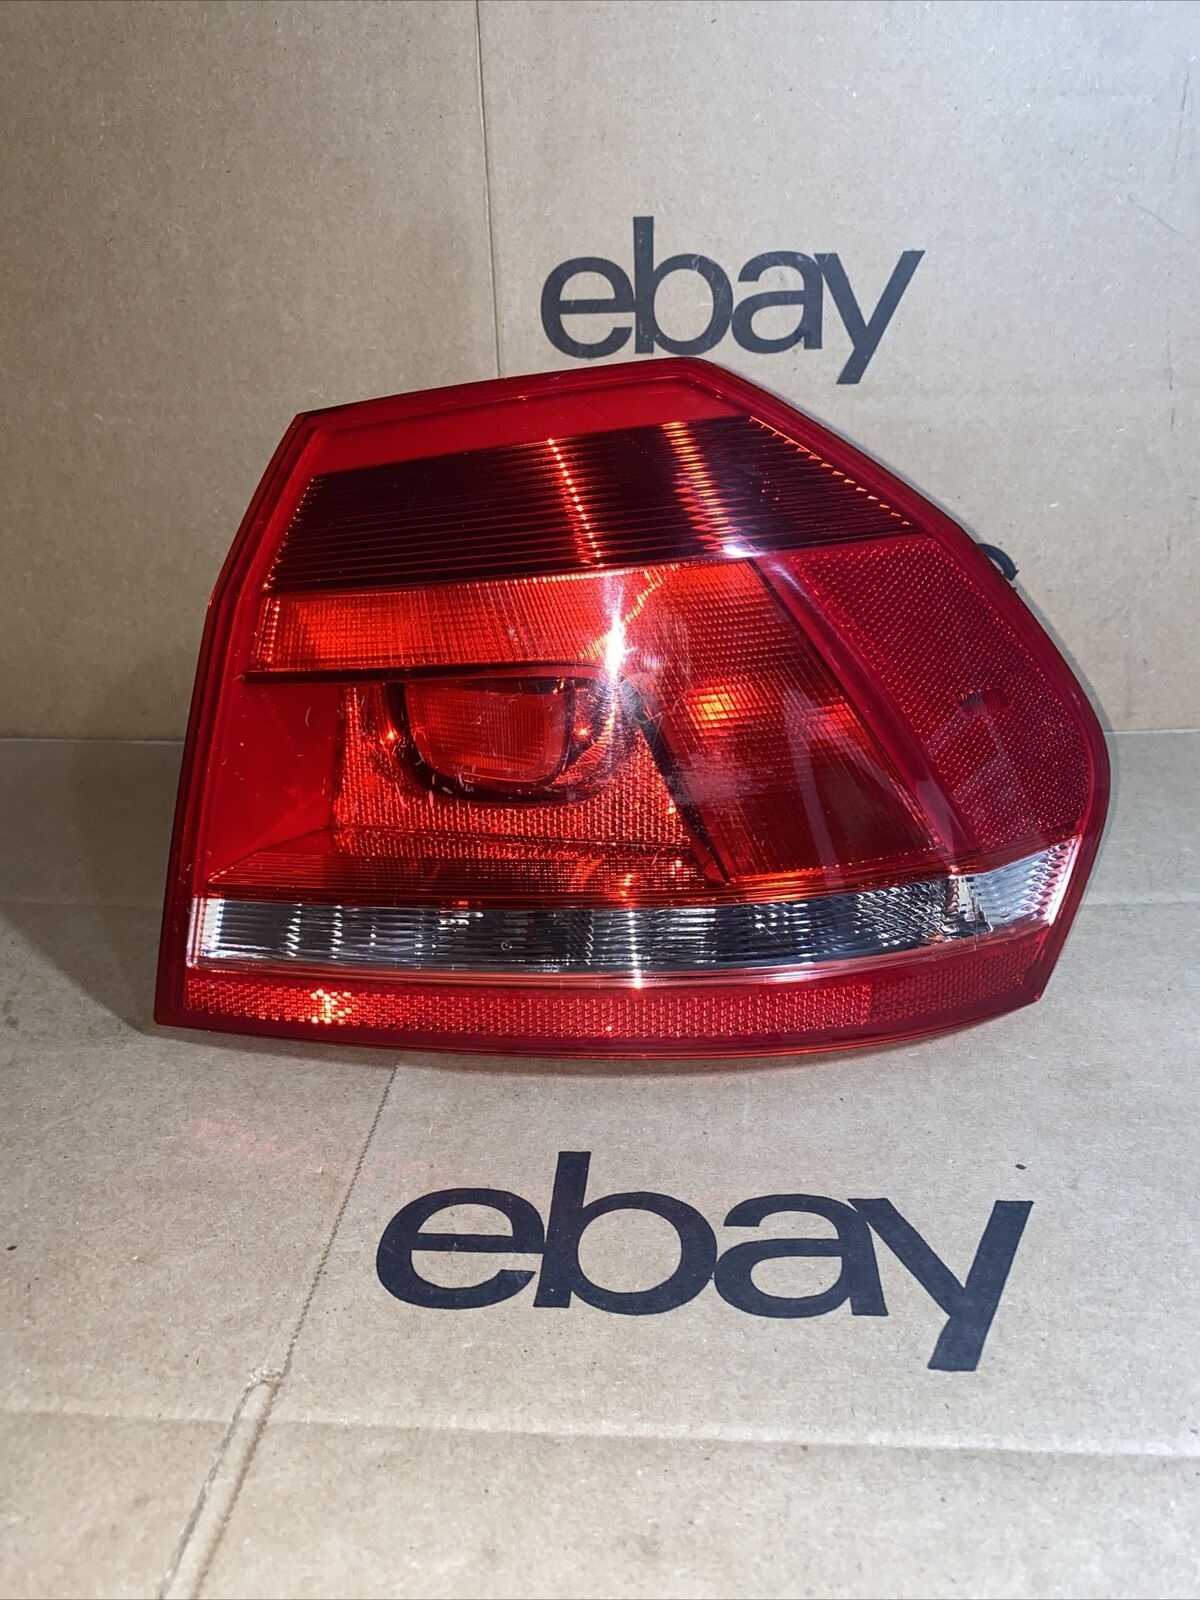 Multiple Manufacturers Vw2804108n 2012 2015 Partslink Vw2804108 2012 Oe Replacement Tail Light Assembly Volkswagen Passat Lights Lighting Accessories Lighting Assemblies Accessories